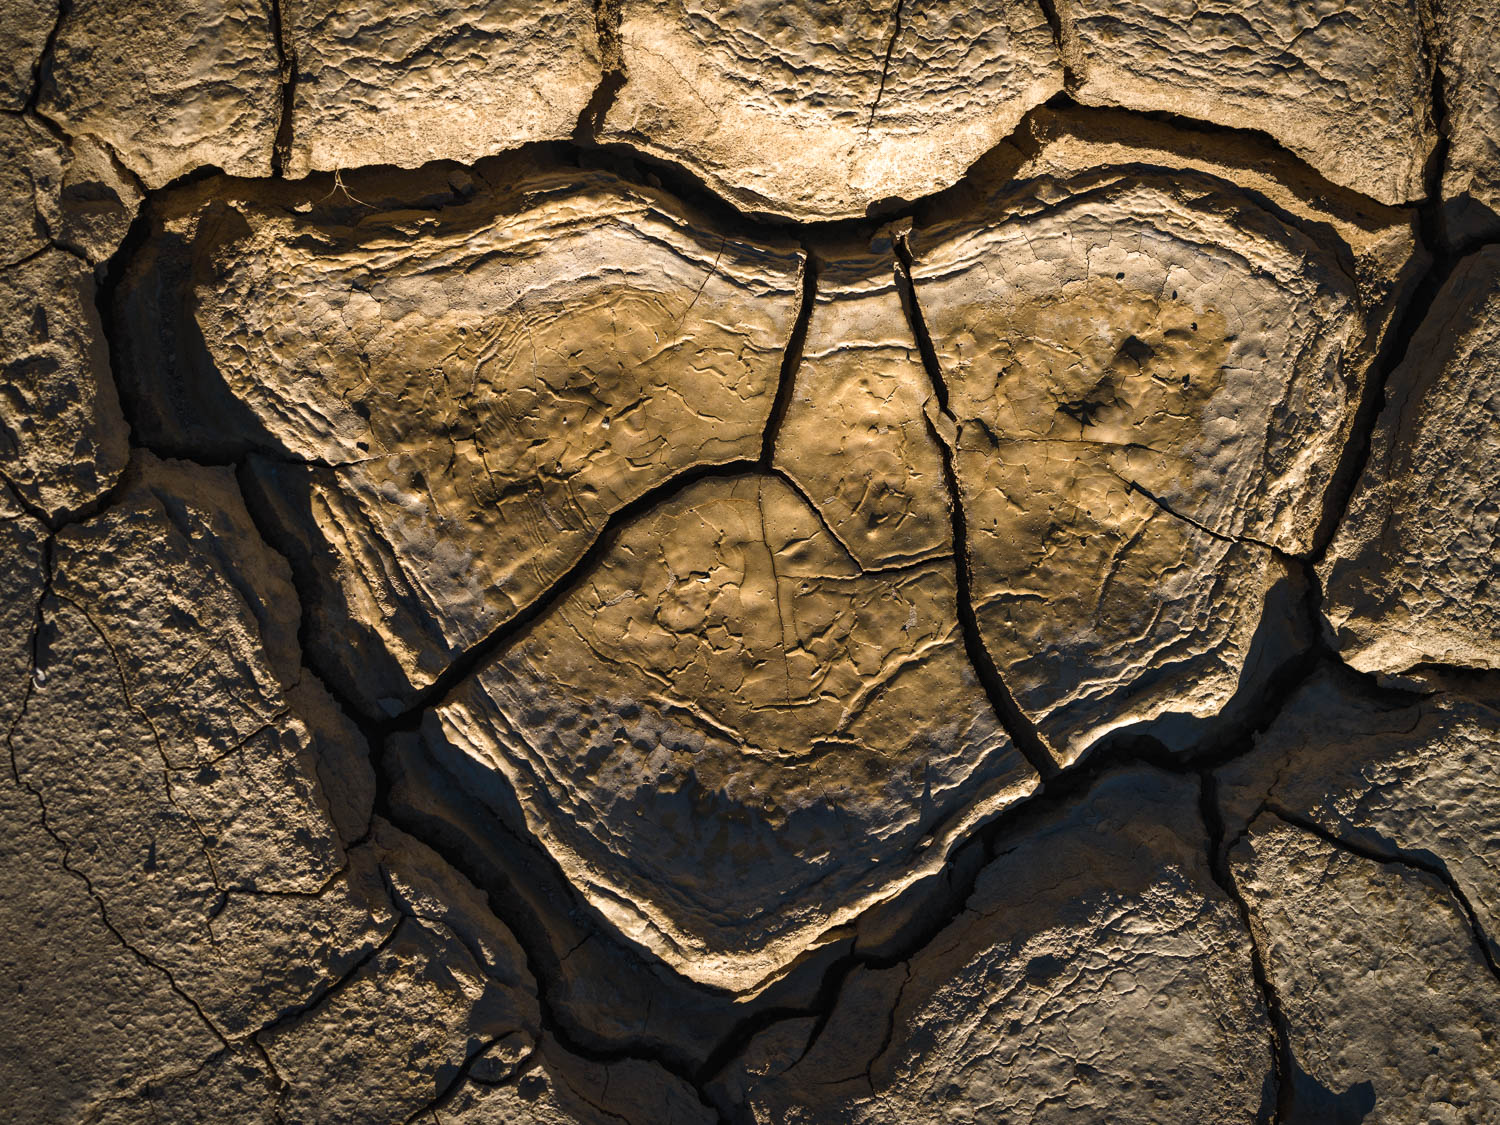 Cracked mud tiles form the shape of a heart in the desert landscape of Death Valley